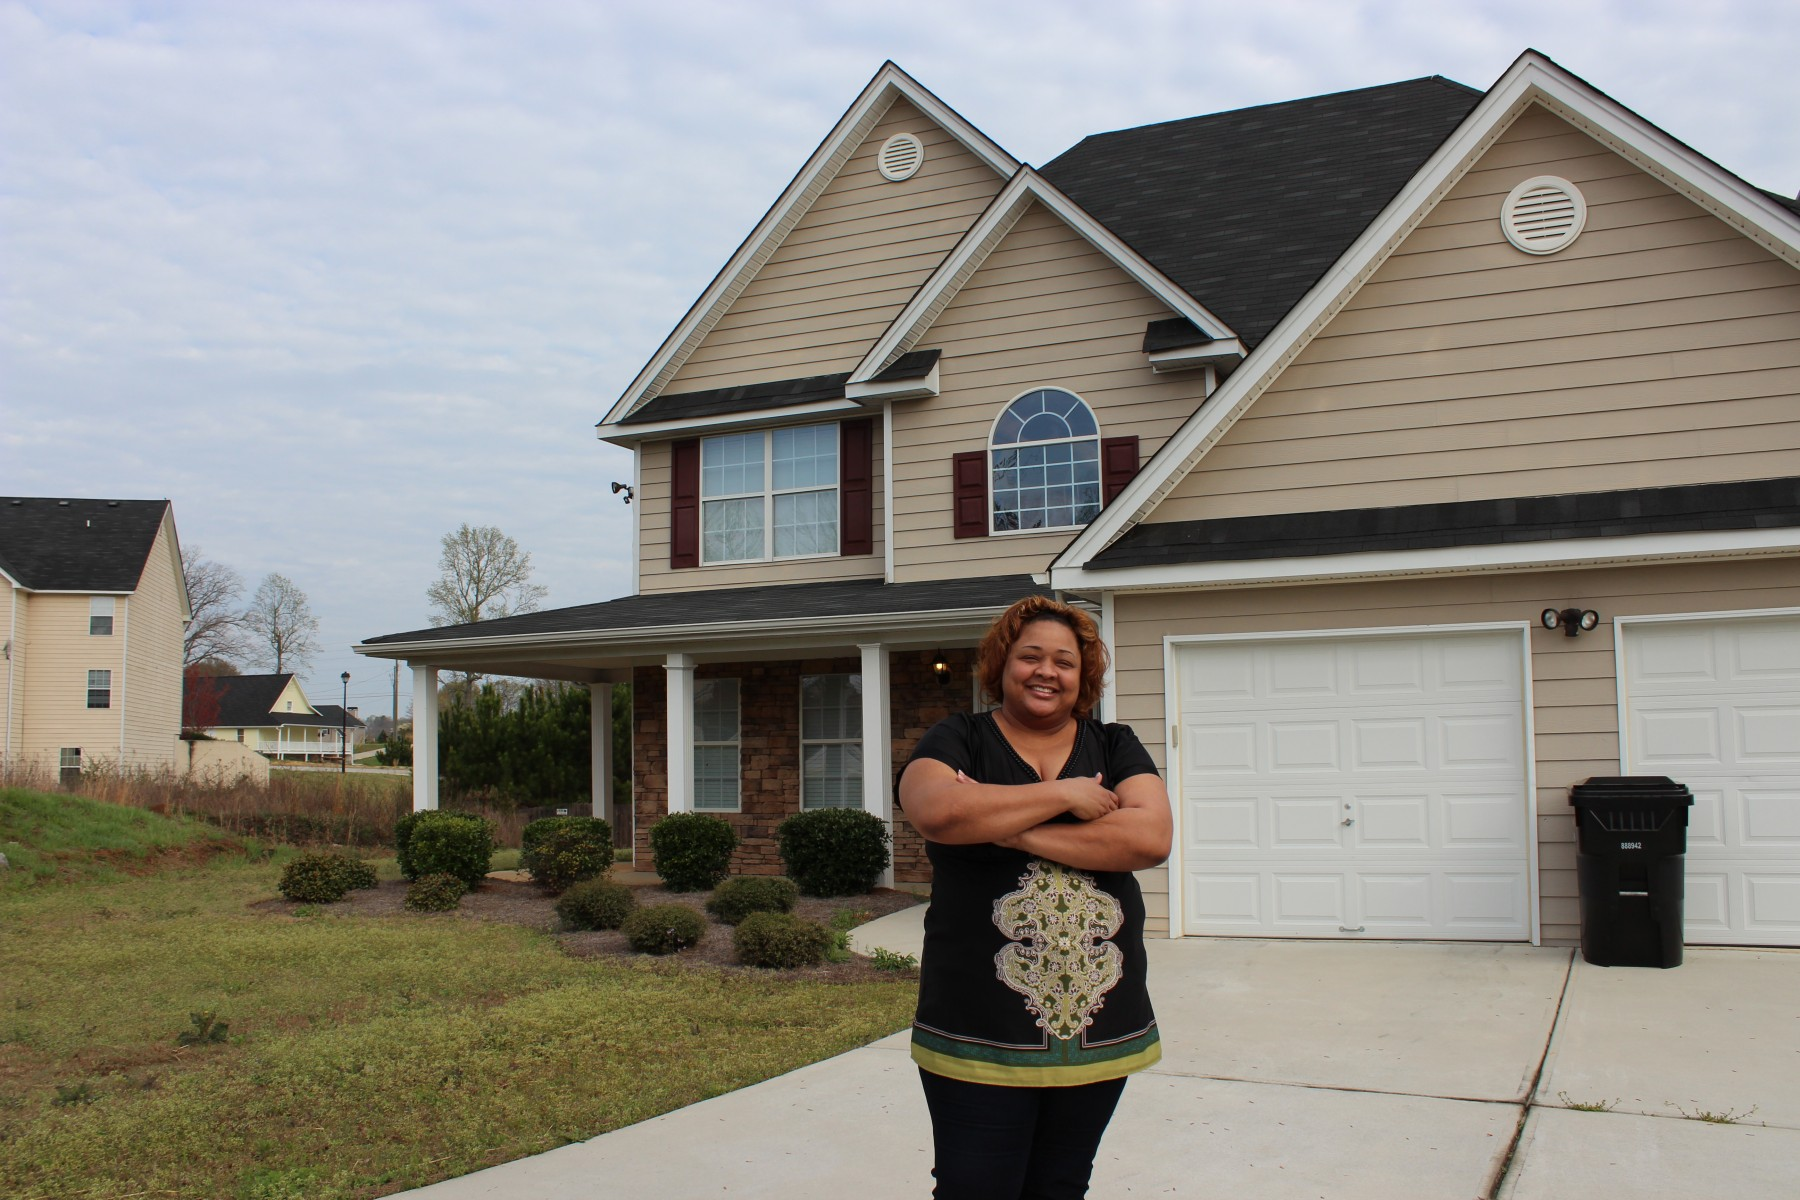 Tracey in front of her home